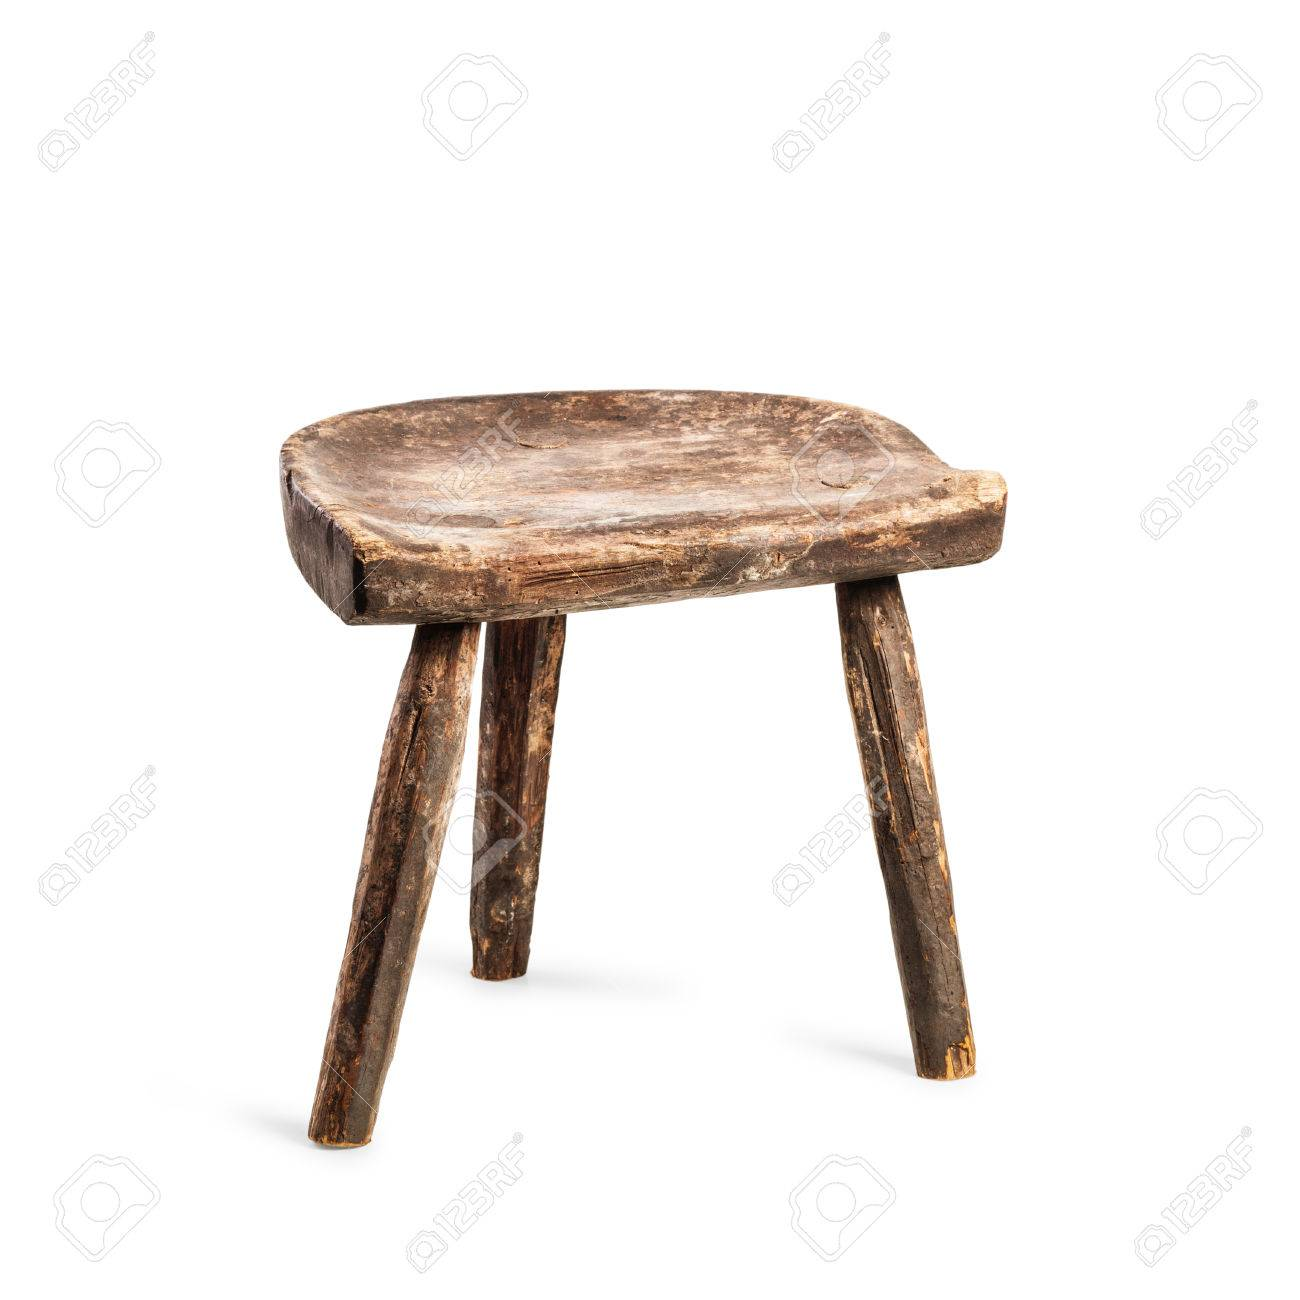 Antique chair legs - Stock Photo Vintage Stool Isolated On White Background Antique Three Legs Chair Single Object With Clipping Path